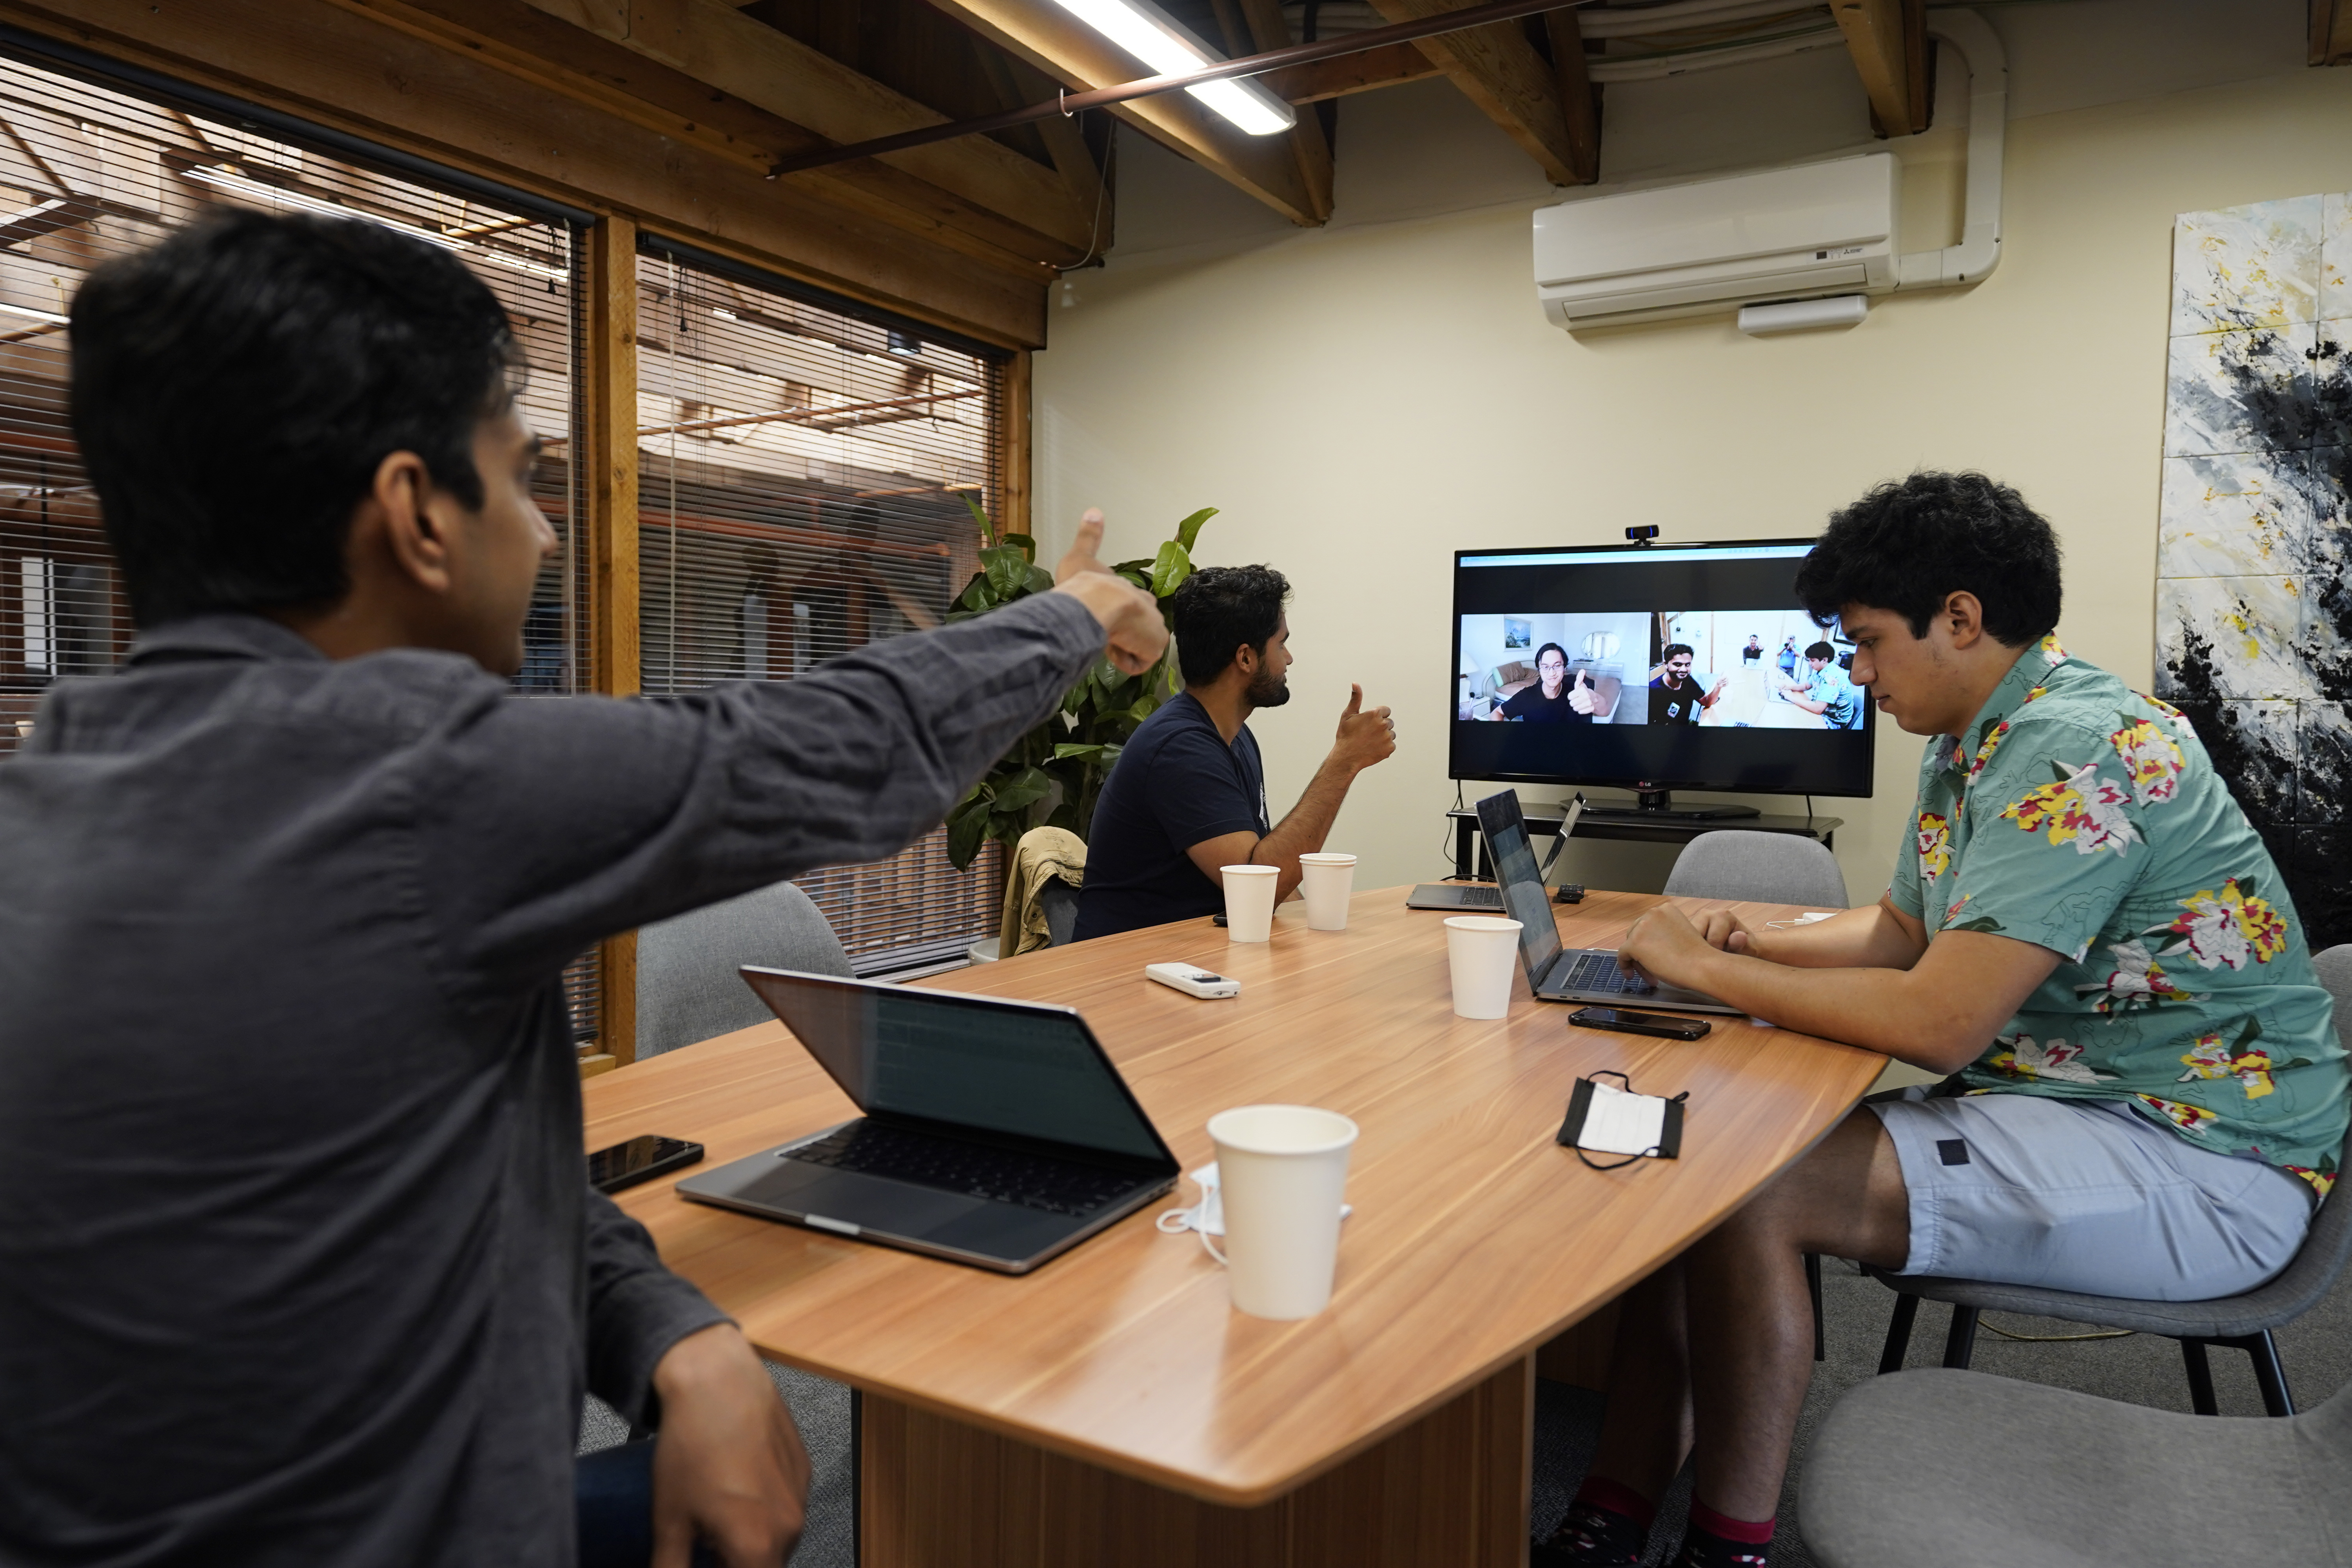 RunX CEO Ankur Dahiya, center, takes part in a meeting with employees JD Palomino, right, and Nitin Aggarwal, left, at a rented office in San Francisco, Friday, Aug. 27, 2021.